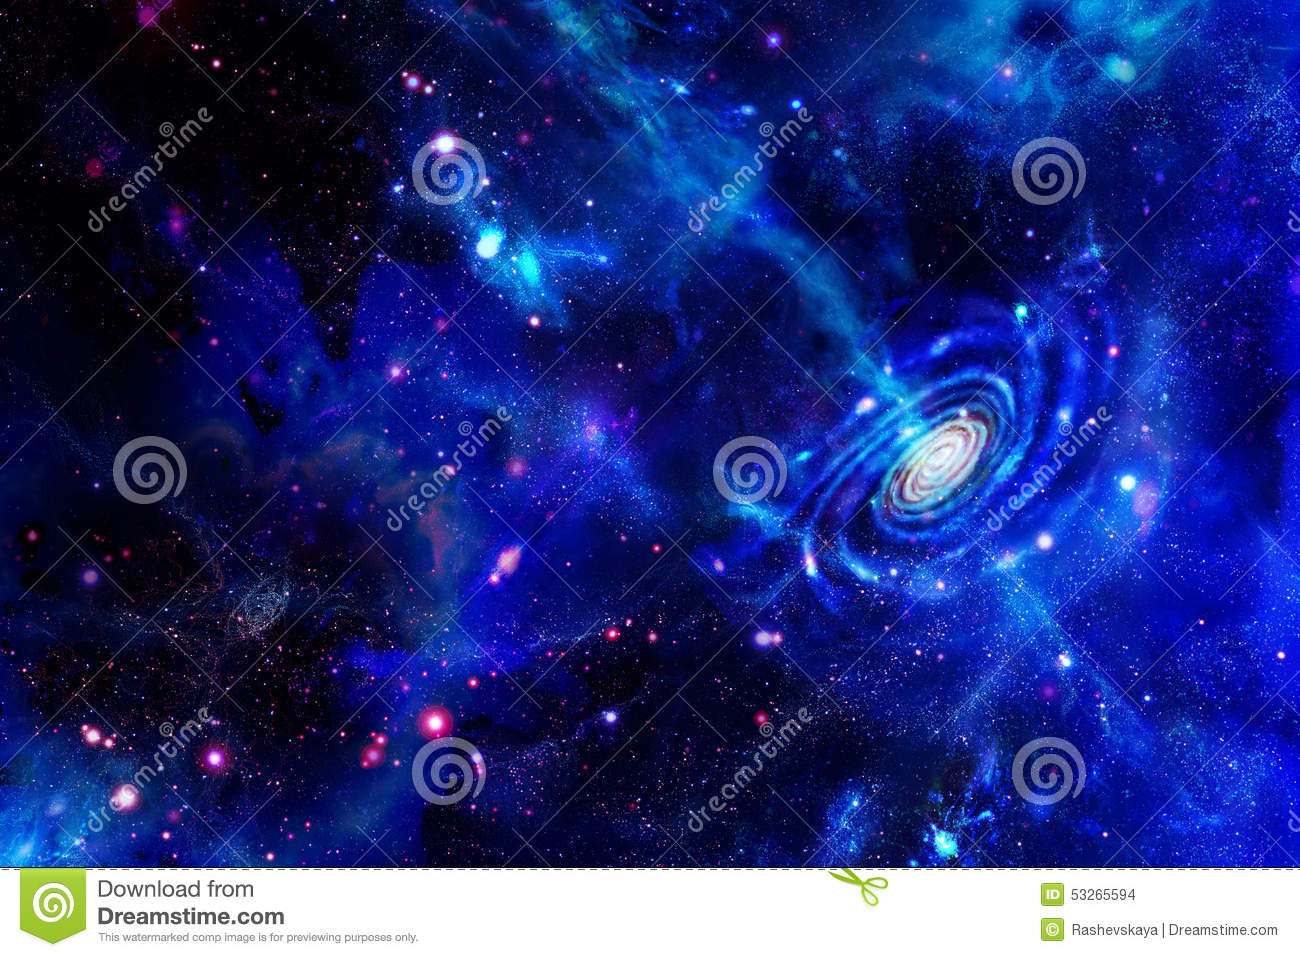 Galaxy-emitting substance and molecular clouds